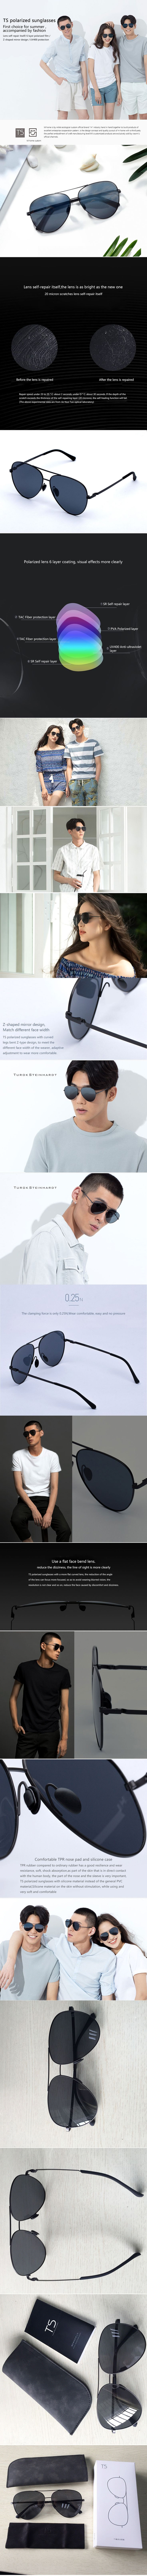 Self-repairing coating, 6-layer polarizing films, Z shaped glasses temple and UV400 protection. Experience extreme comfort and durability without renouncing the stylish design of your sunglasses with the new Xiaomi Mijia Polarized Sunglasses.